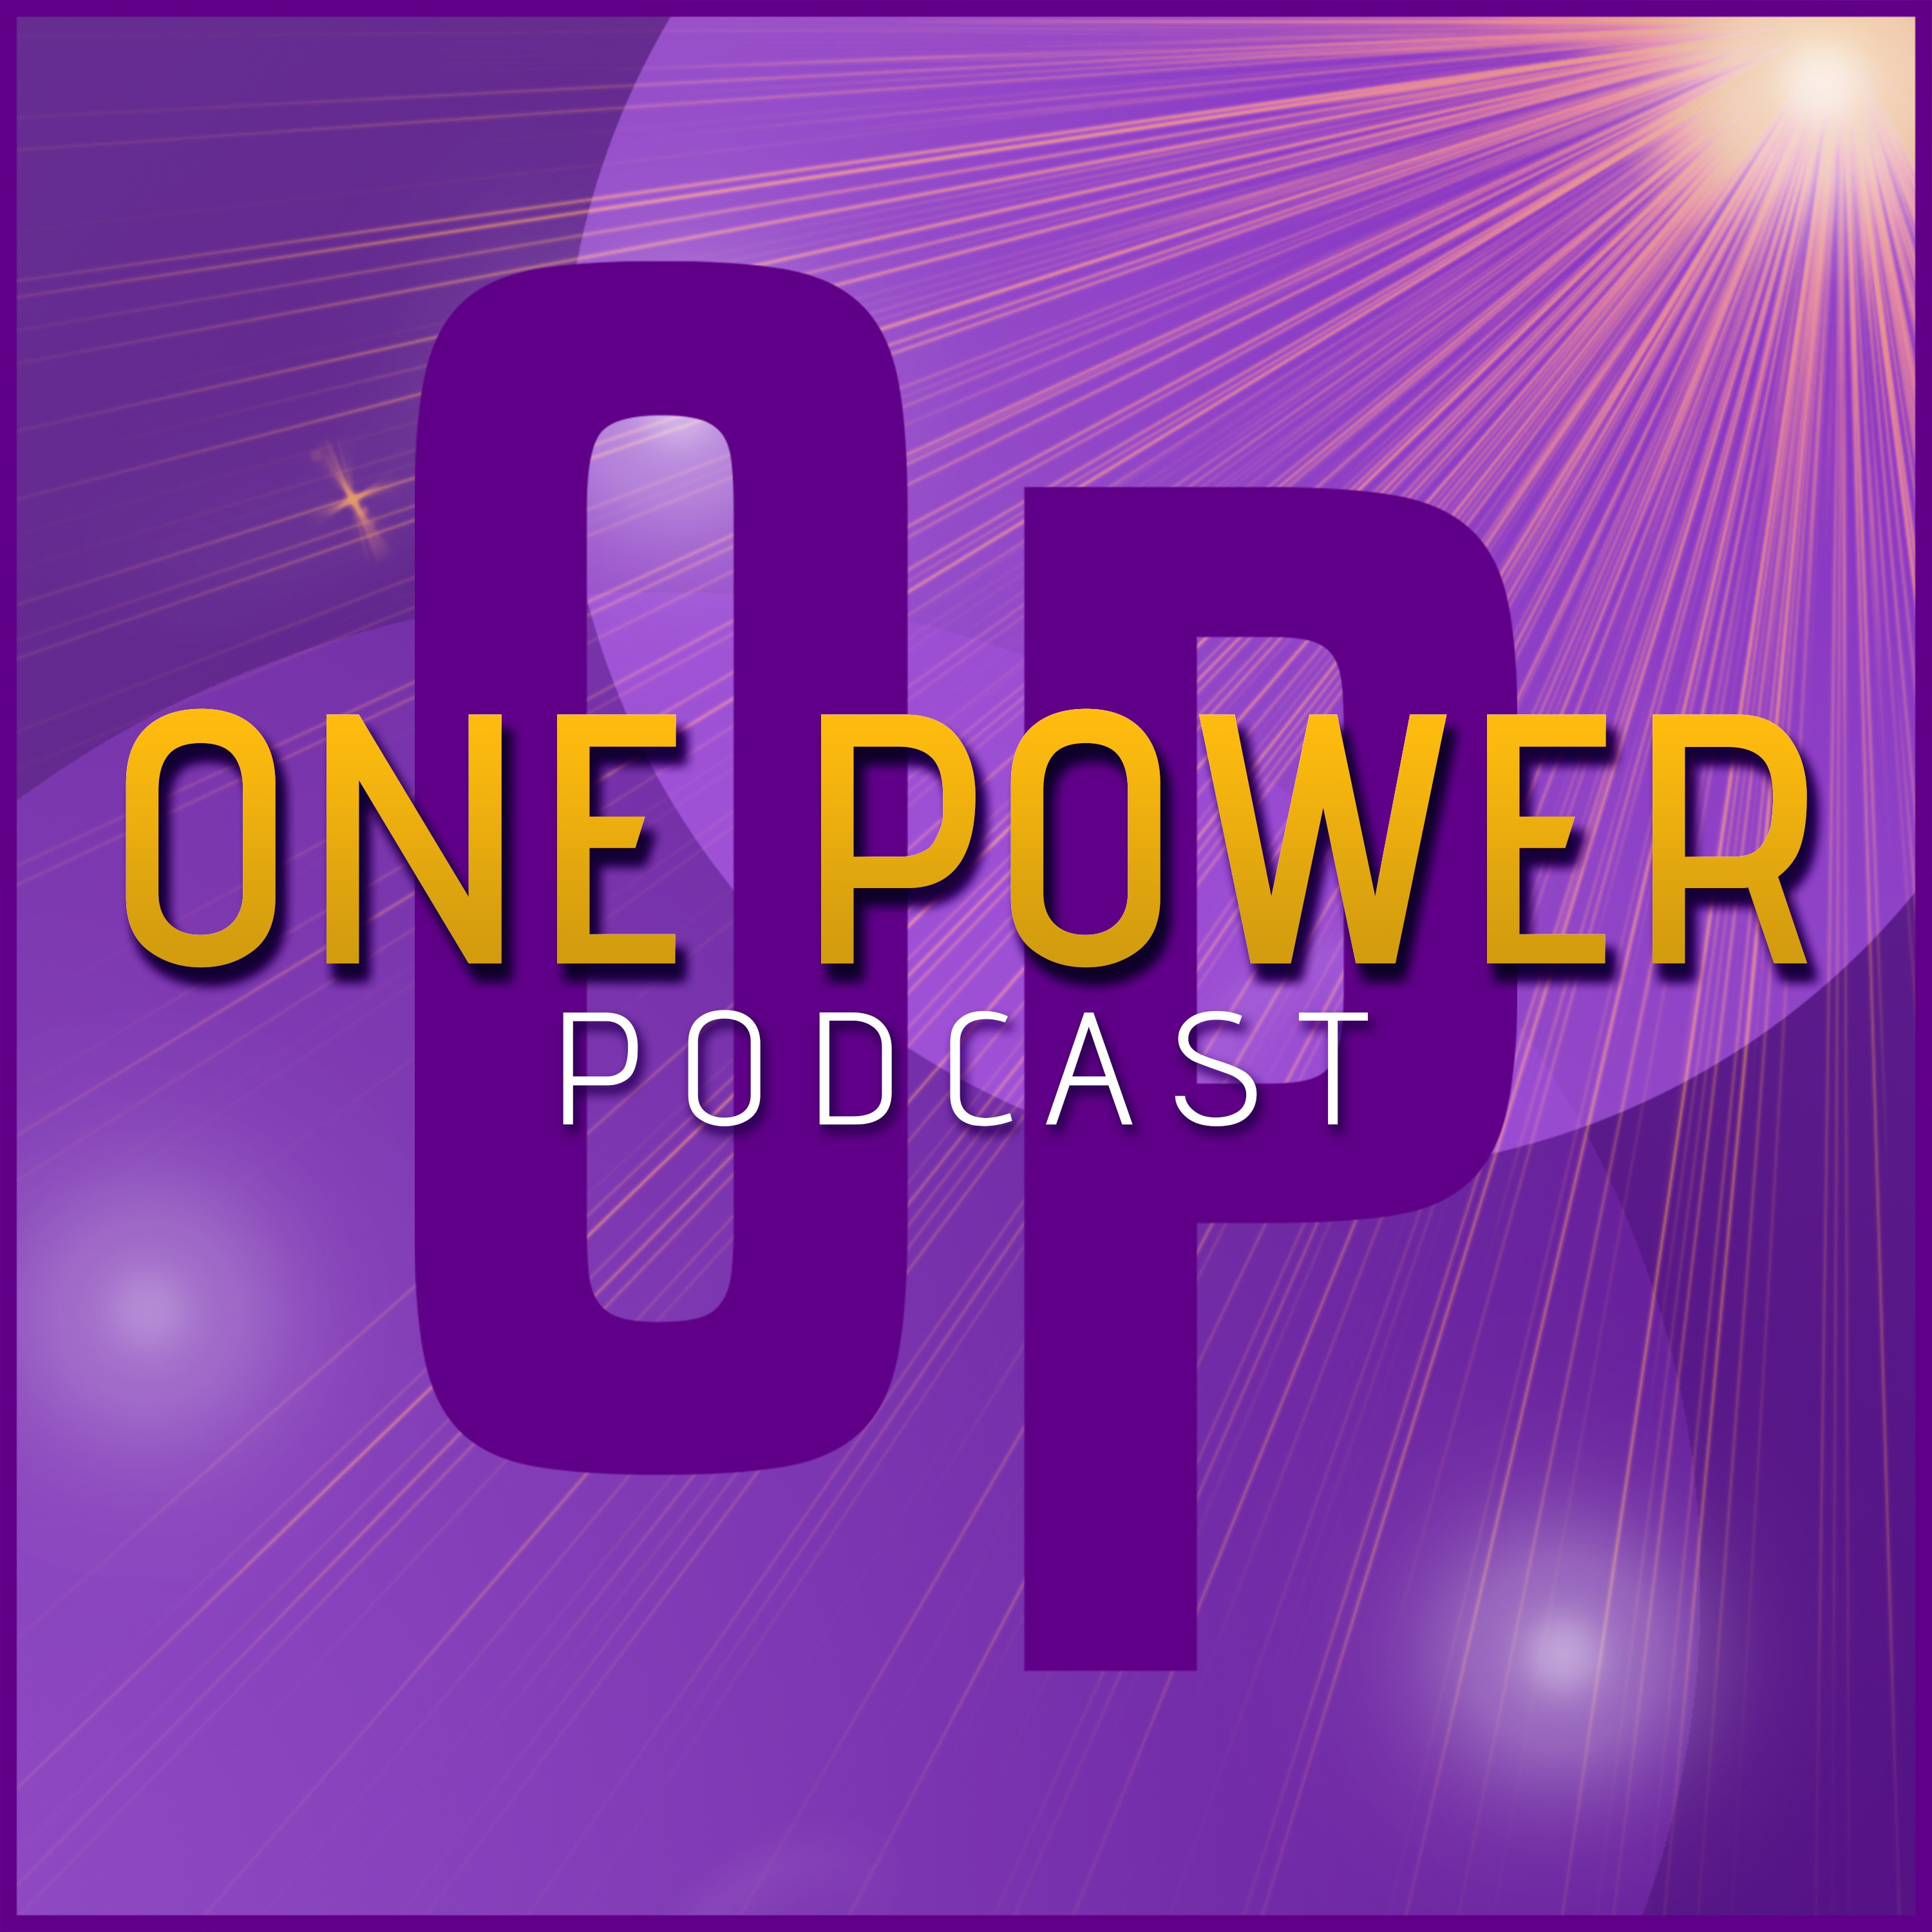 One Power Podcast